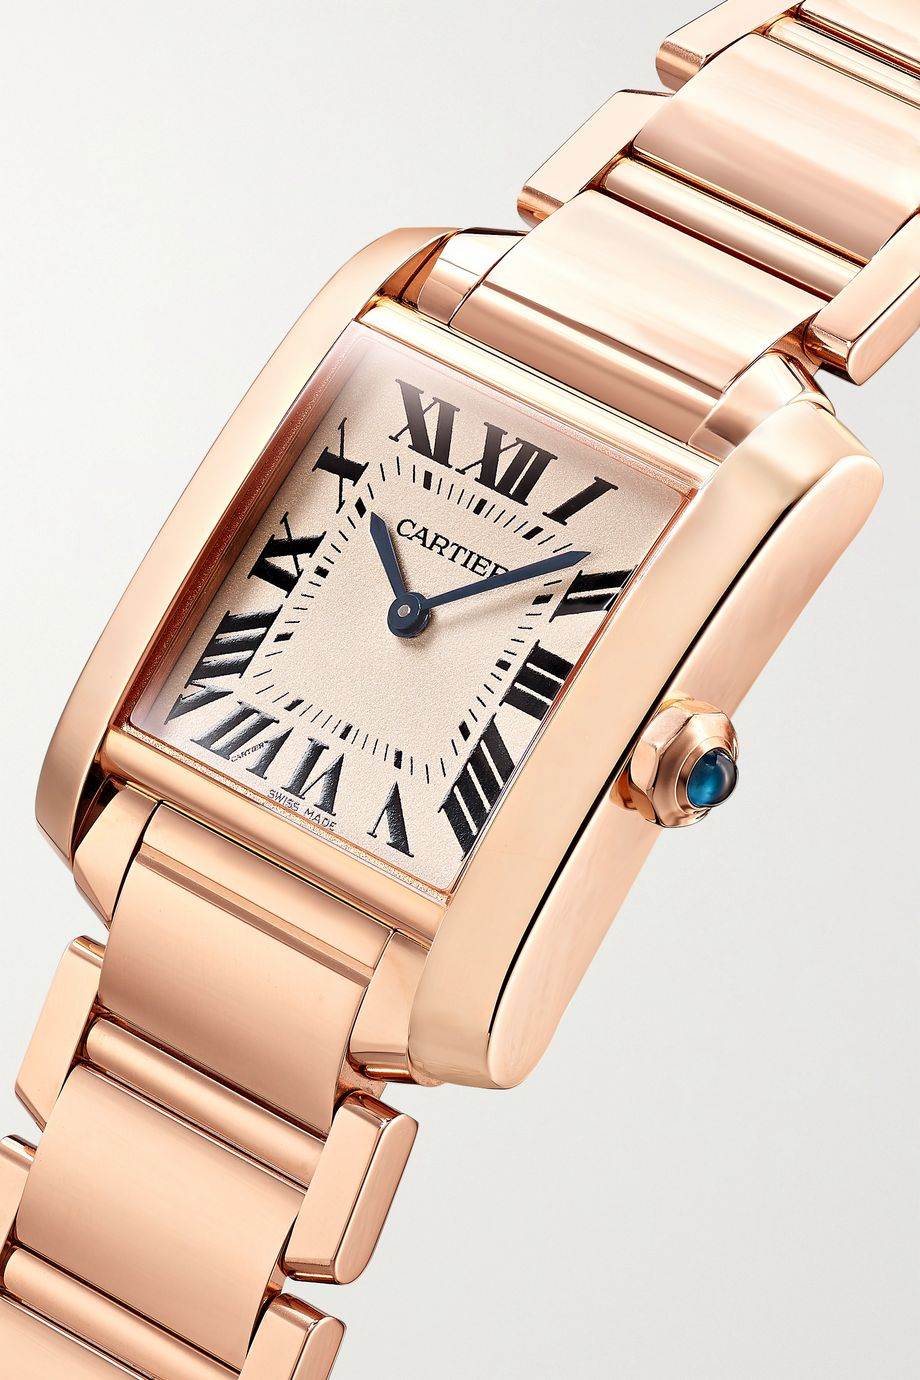 Cartier Tank Française 25mm medium 18-karat rose gold watch